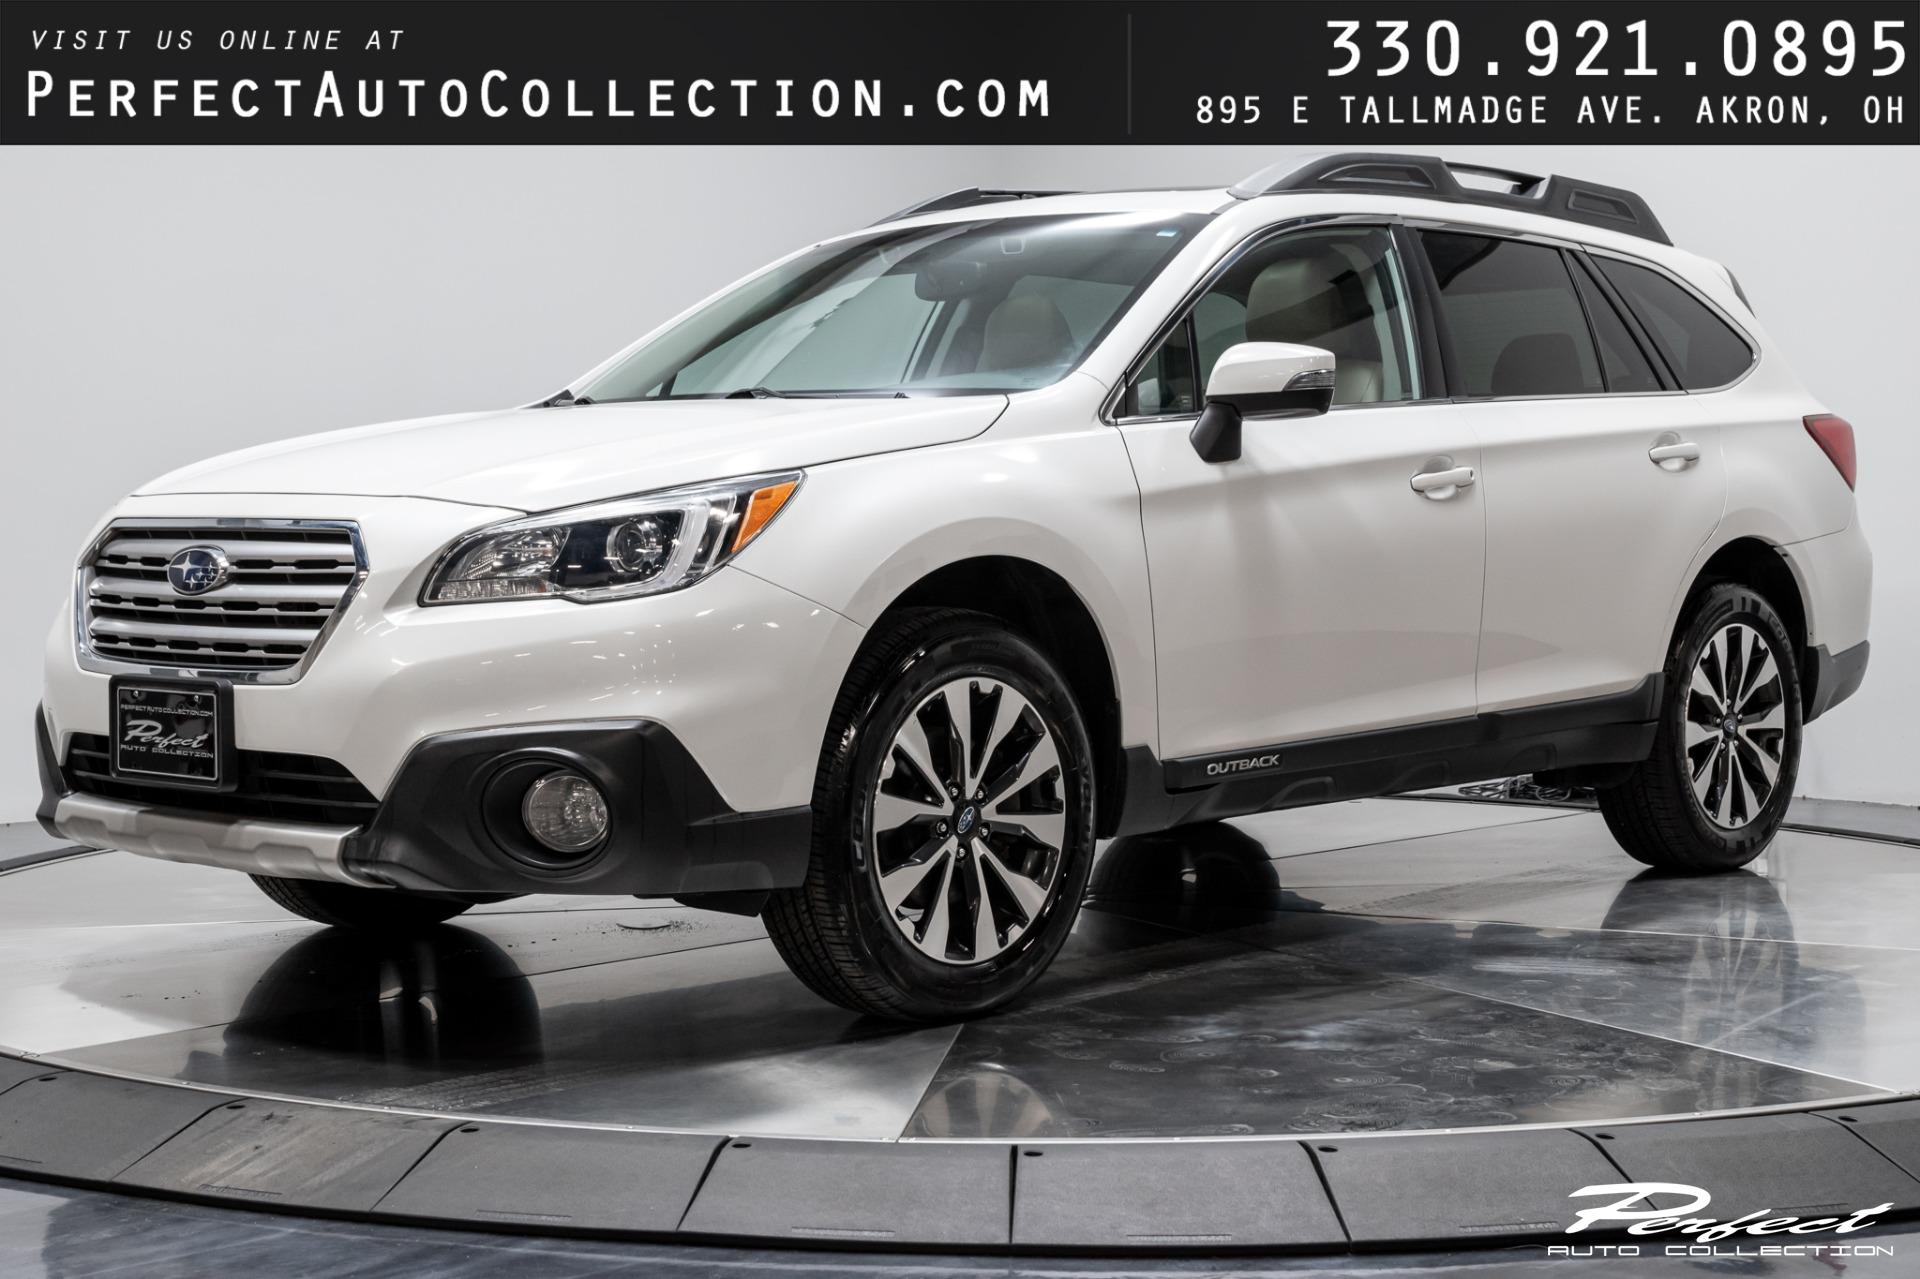 Used 2016 Subaru Outback 2.5i Limited for sale $17,493 at Perfect Auto Collection in Akron OH 44310 1